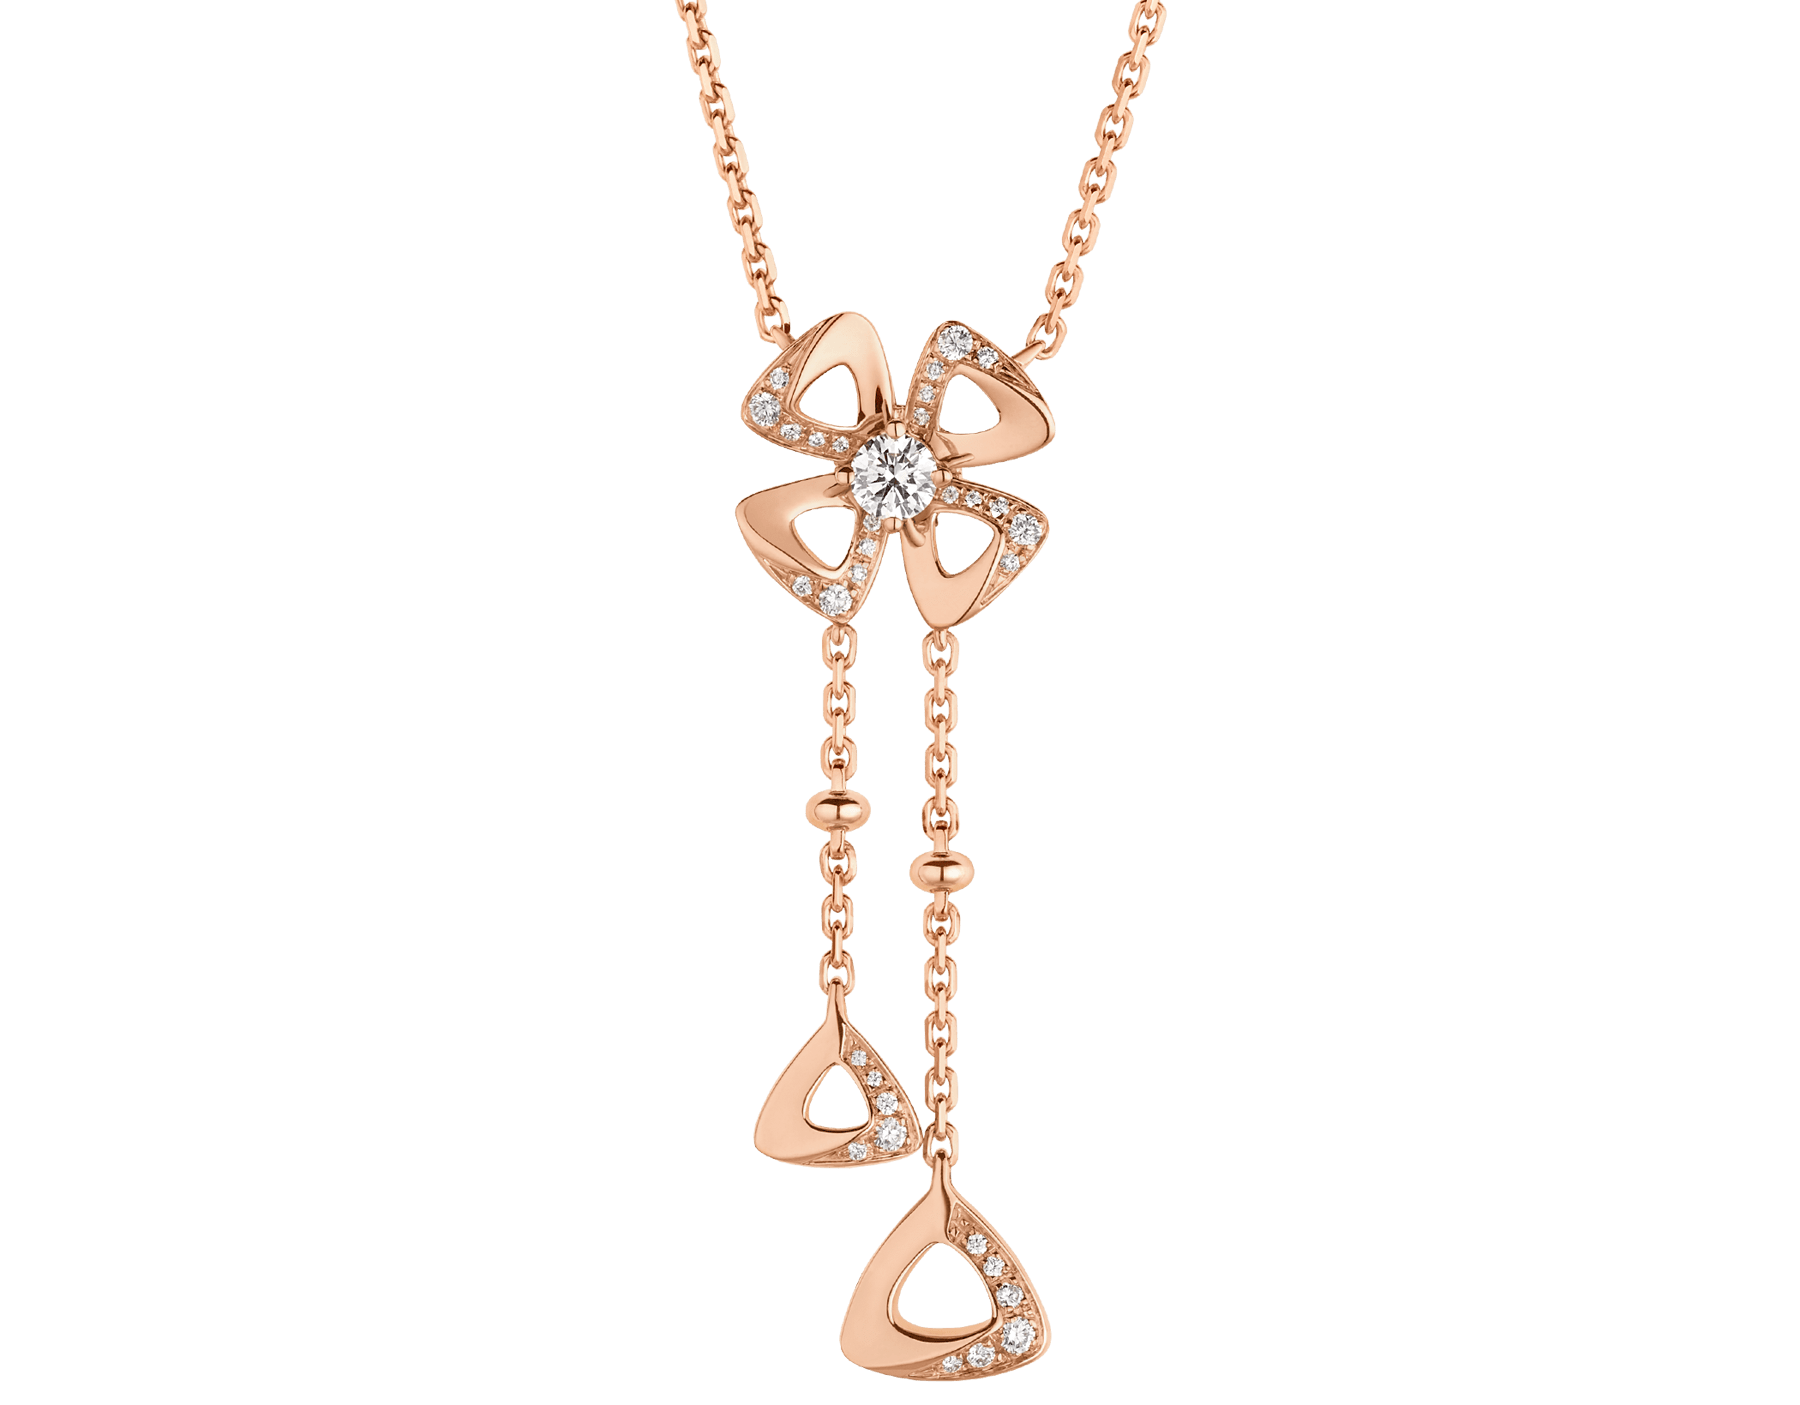 Fiorever 18 kt rose gold necklace set with a central round brilliant-cut diamond (0.10 ct) and pavé diamonds (0.09 ct) 357137 image 1